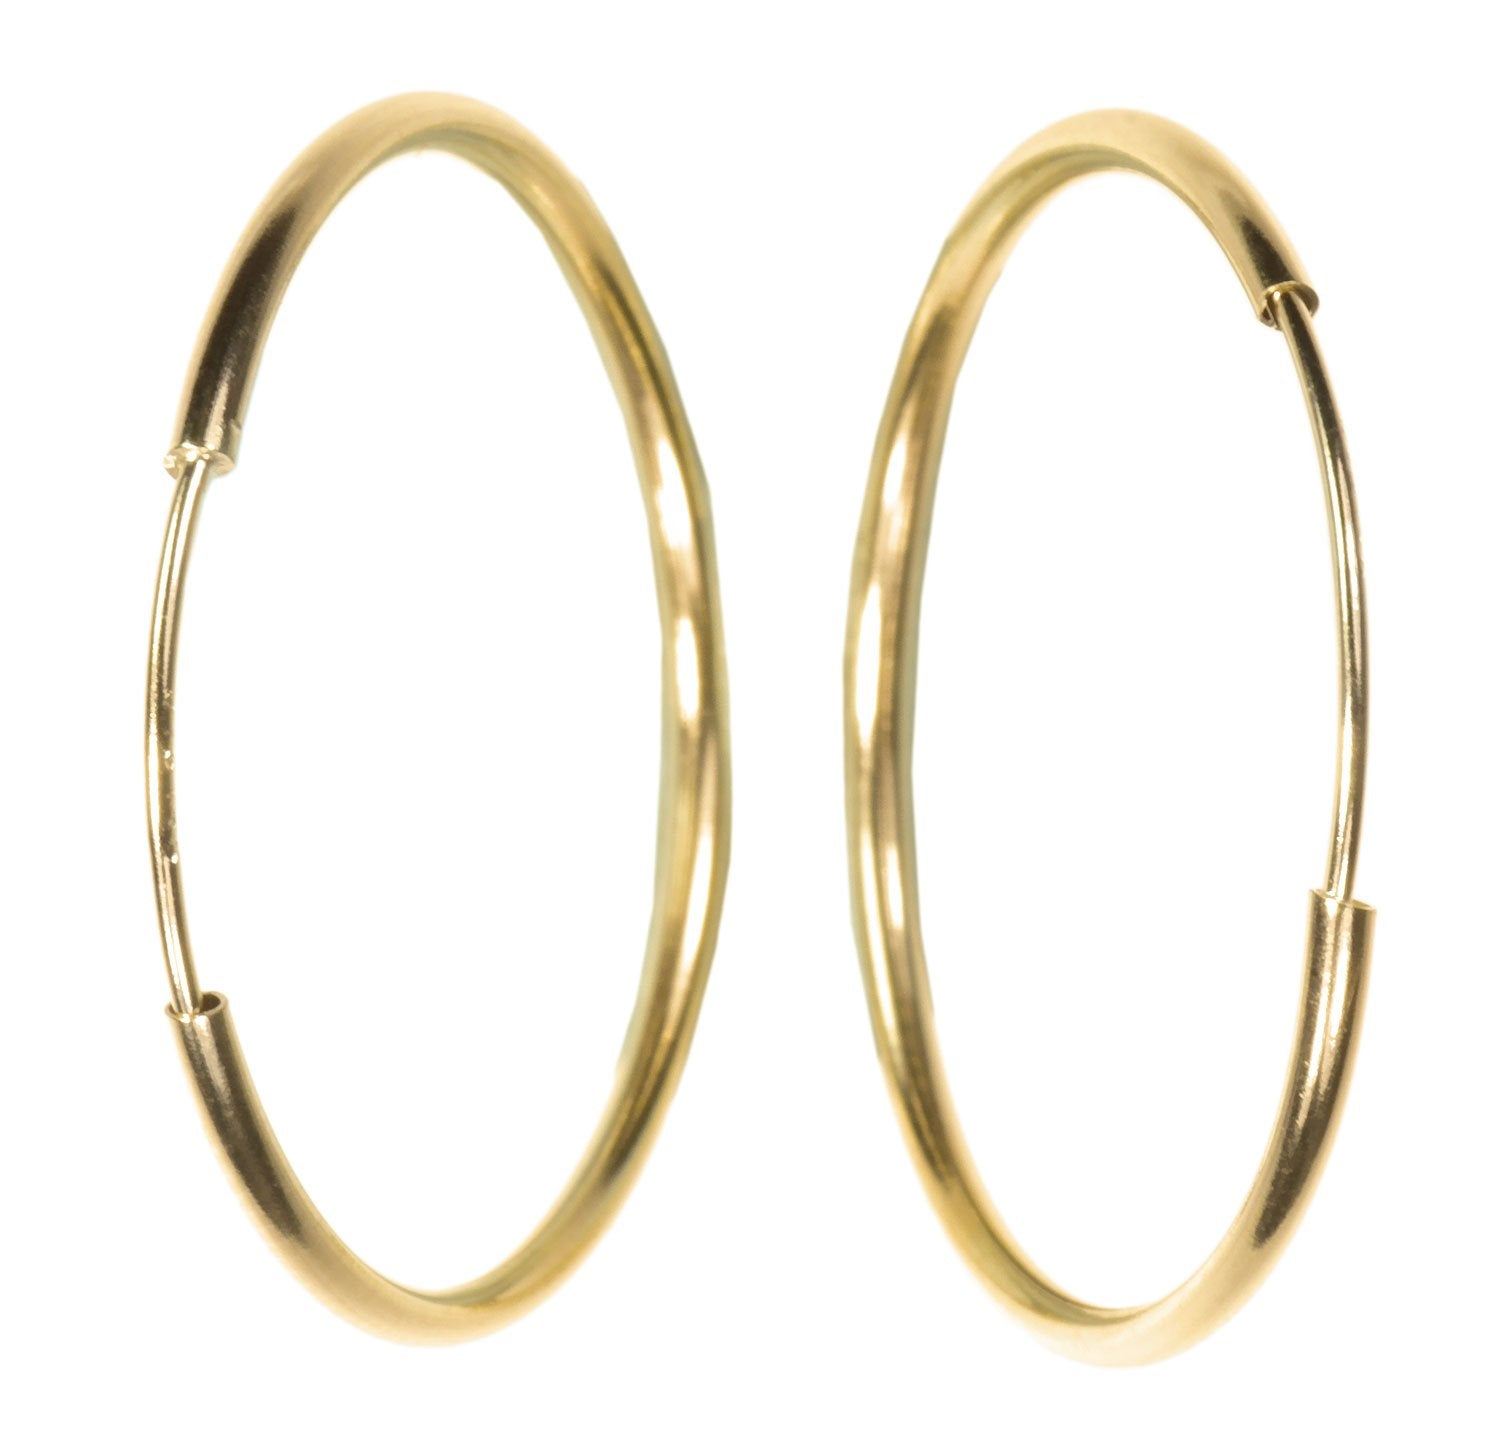 Solid 14K Gold Endless Beading Hoop 20mm 1-pair #14376